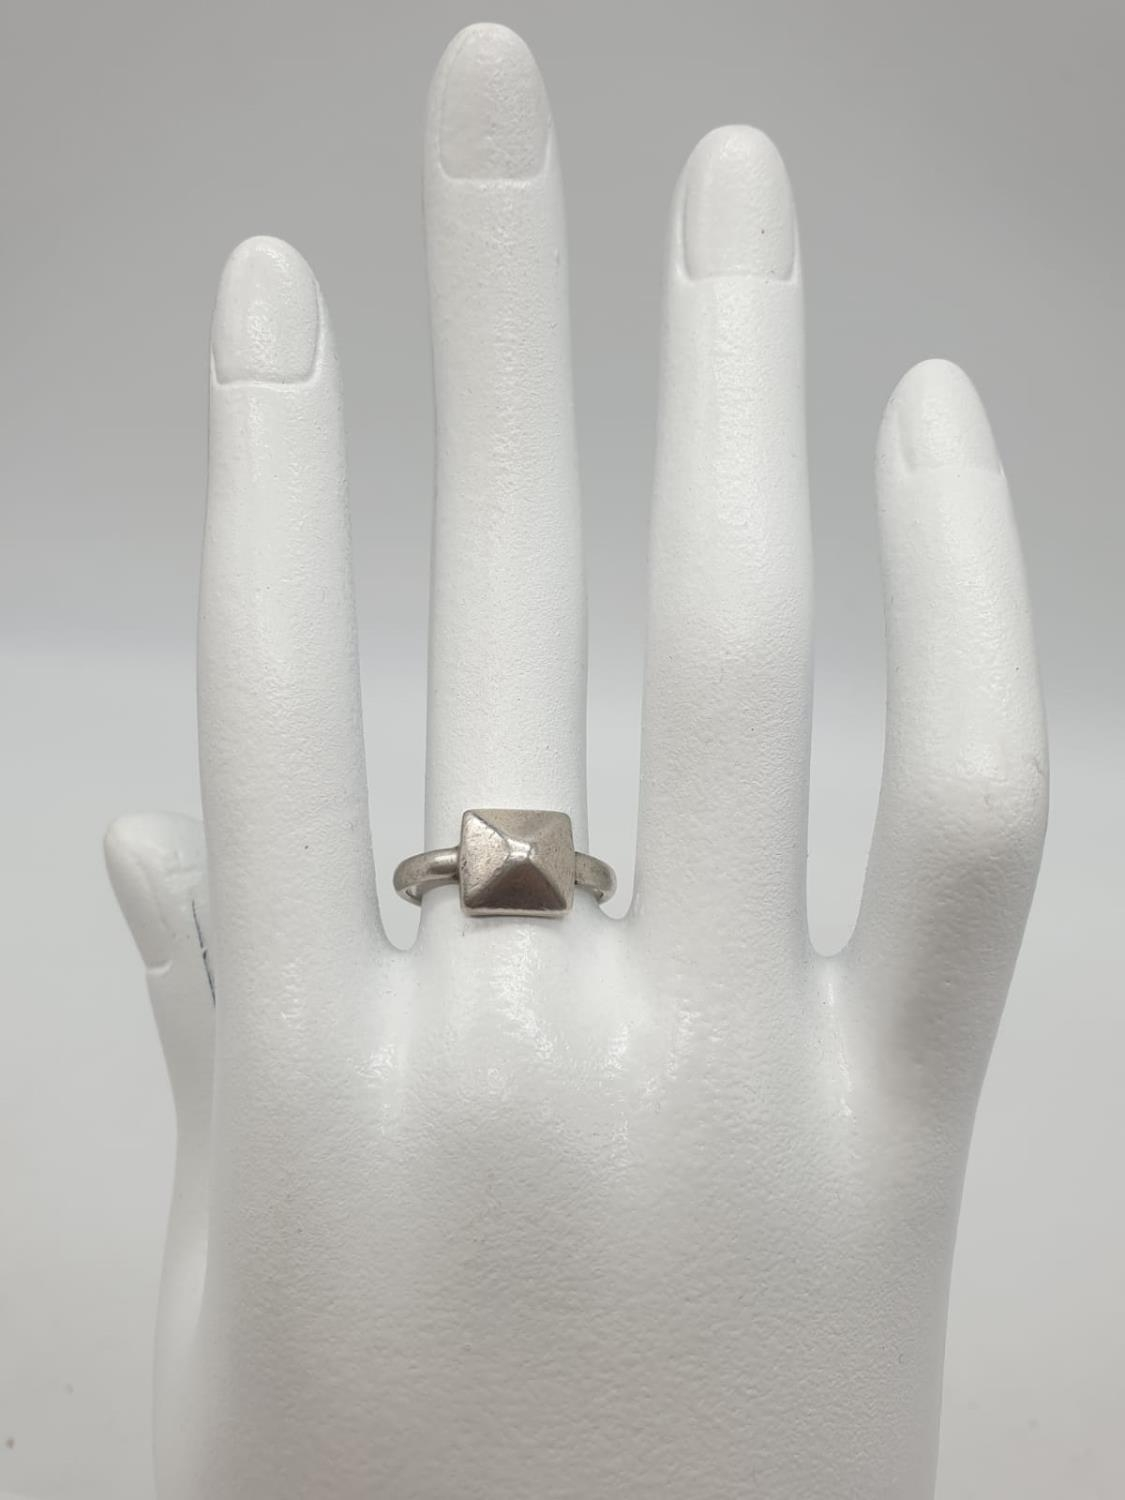 2 x Silver RINGS, Dolphin Size O. Star Size J. 5.1g - Image 12 of 12